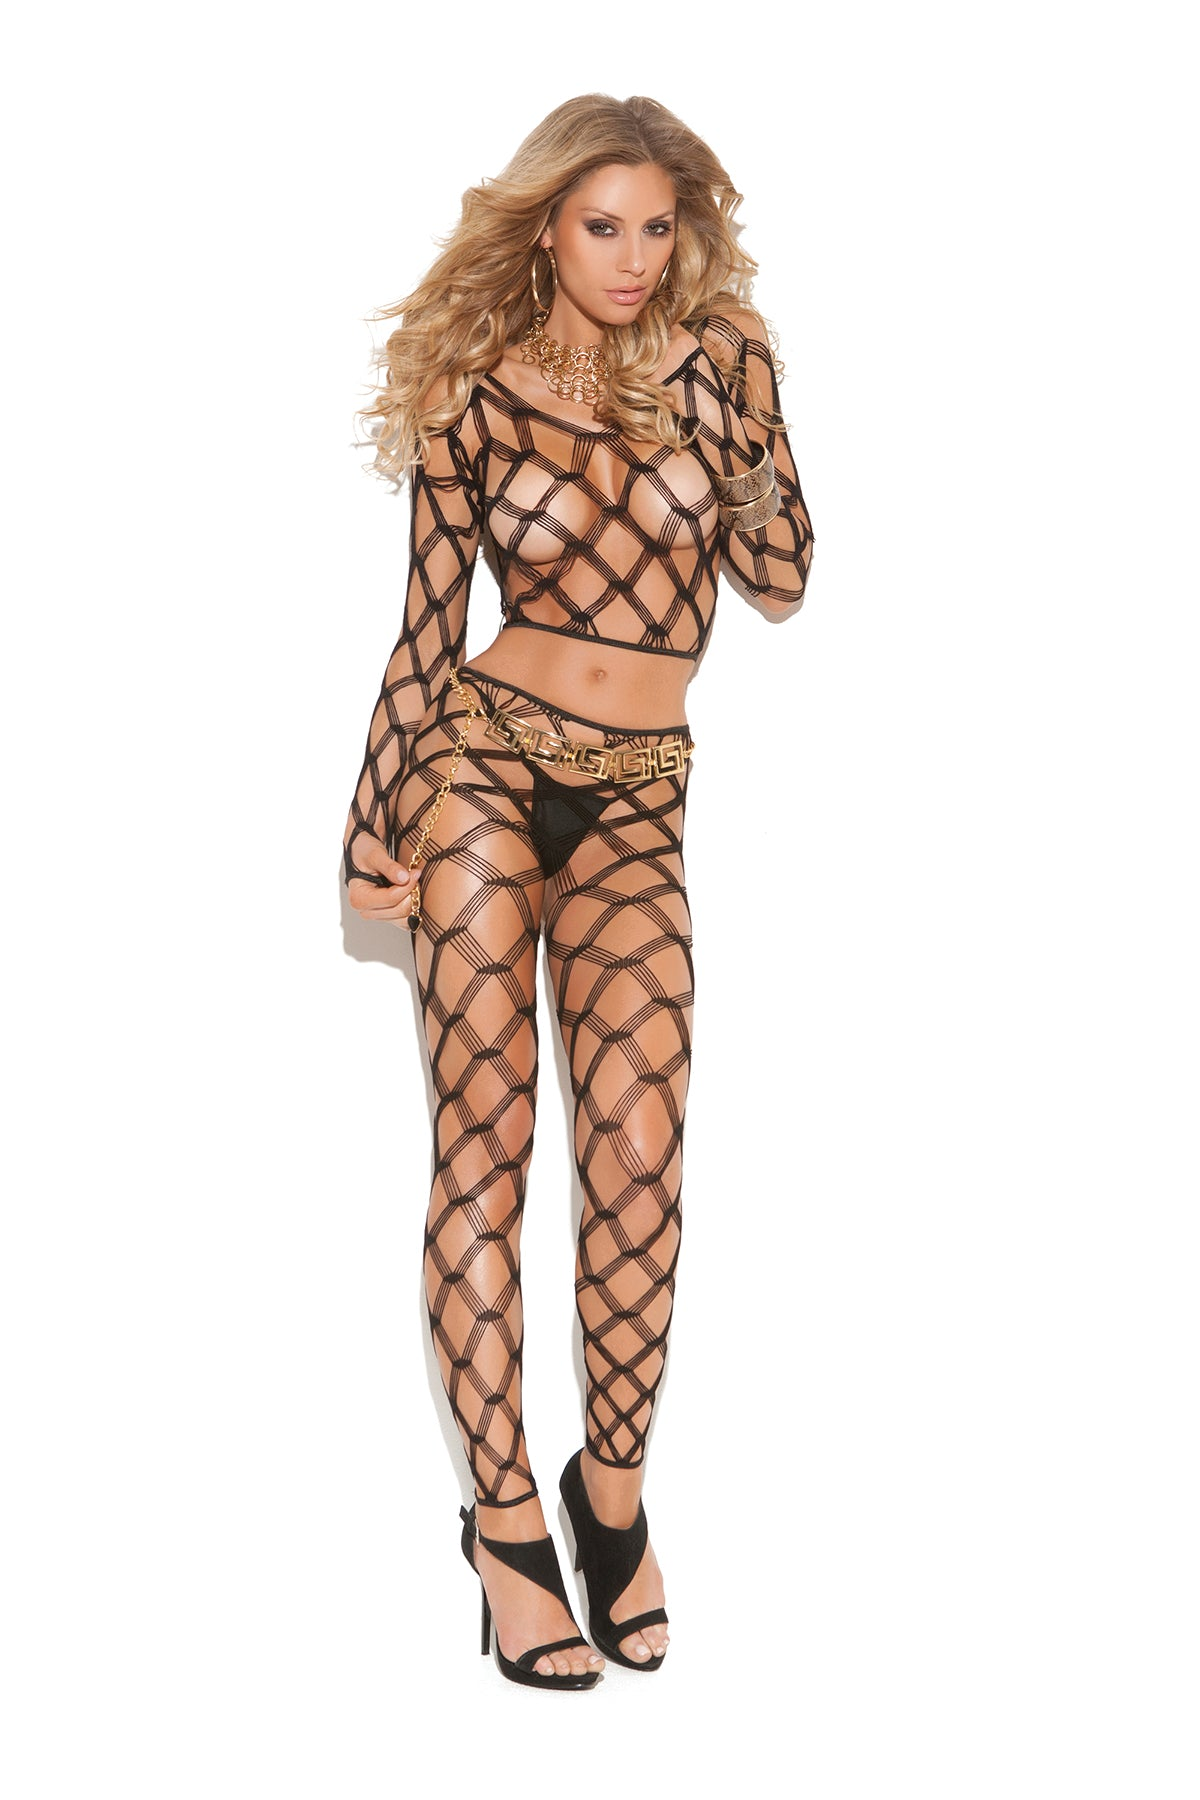 Crotchless Diamond Net Two Piece Bodystocking